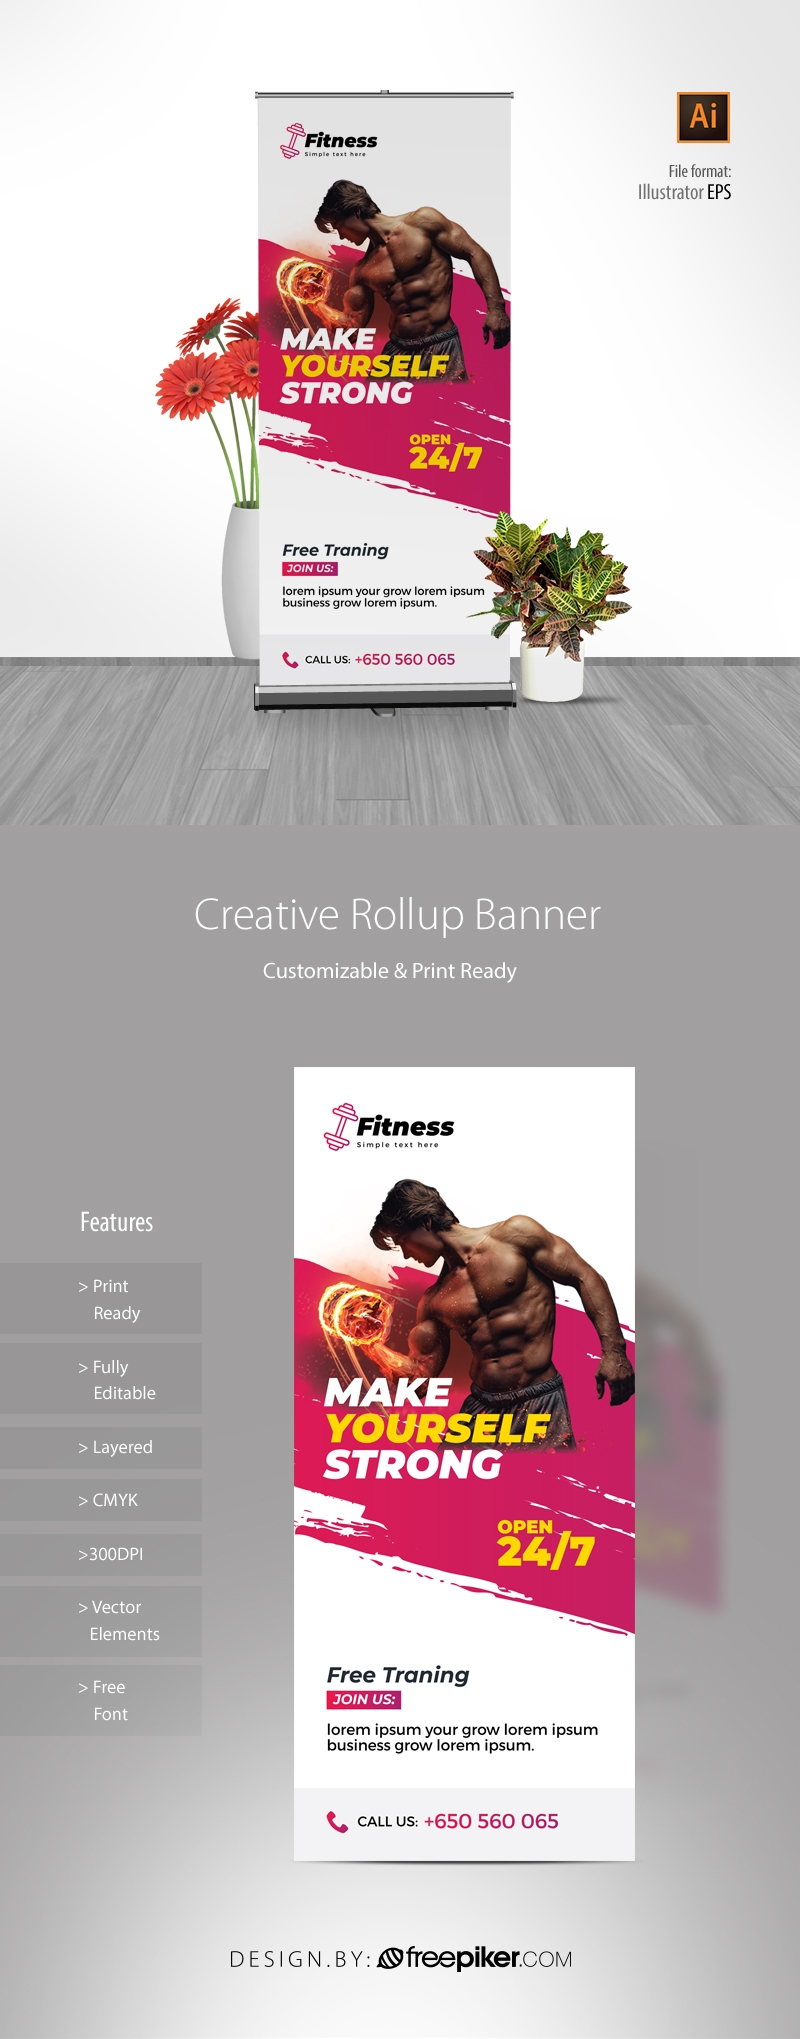 Brush Style Fitness Gym Rollup Banner With Red Accent